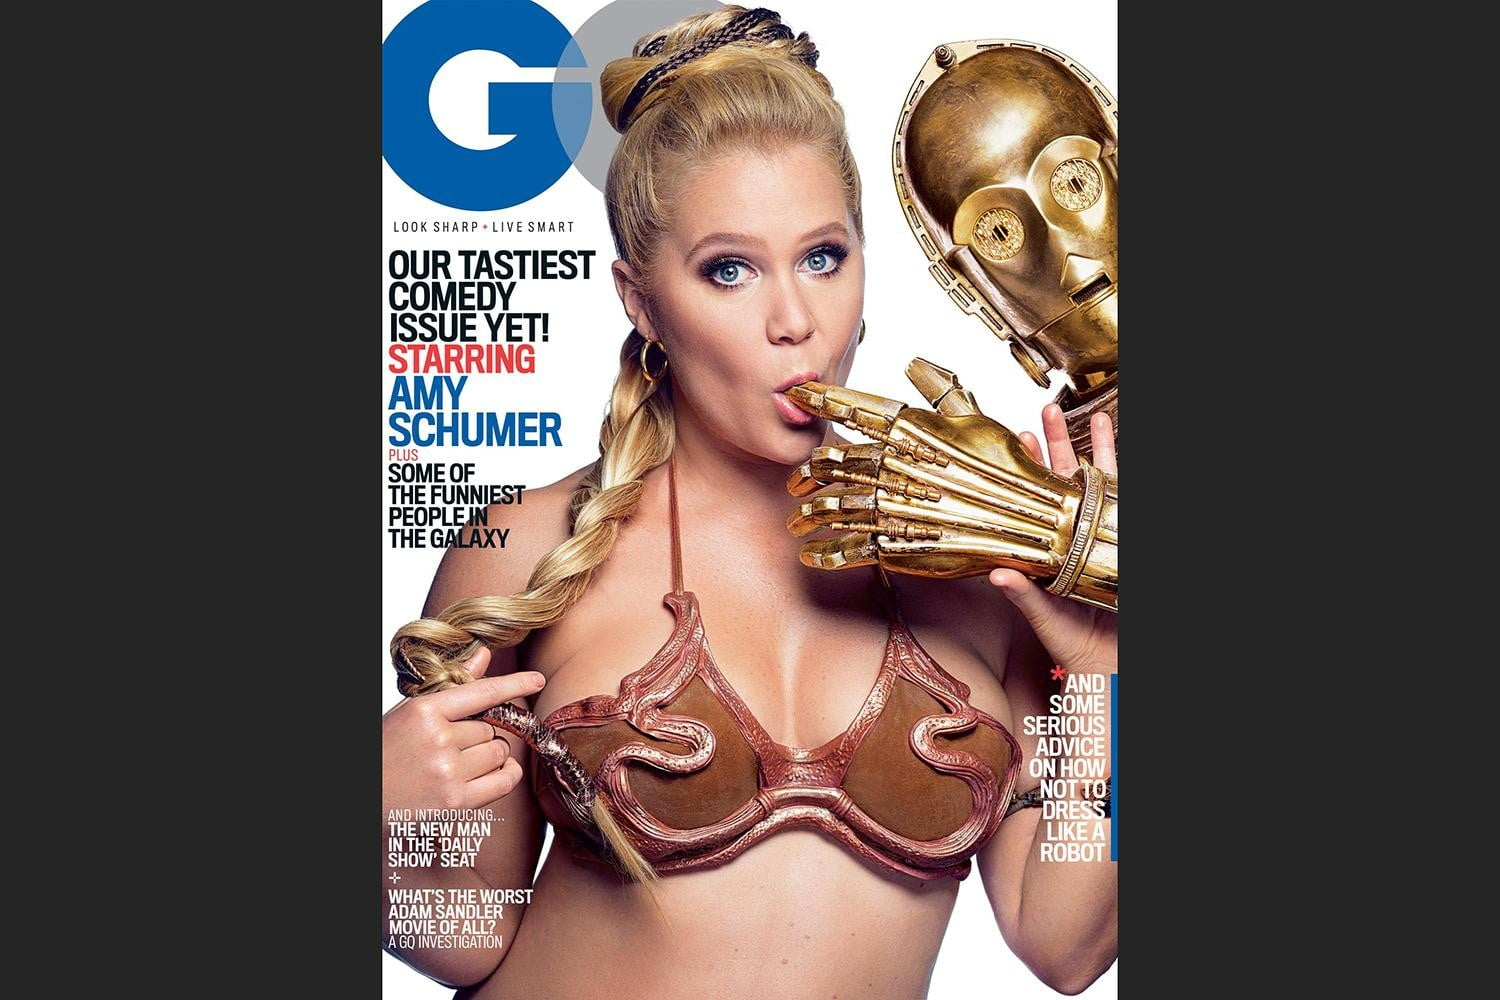 amy schumer risque star wars photo shoot gq is the funniest woman in galaxy  mark seliger cover